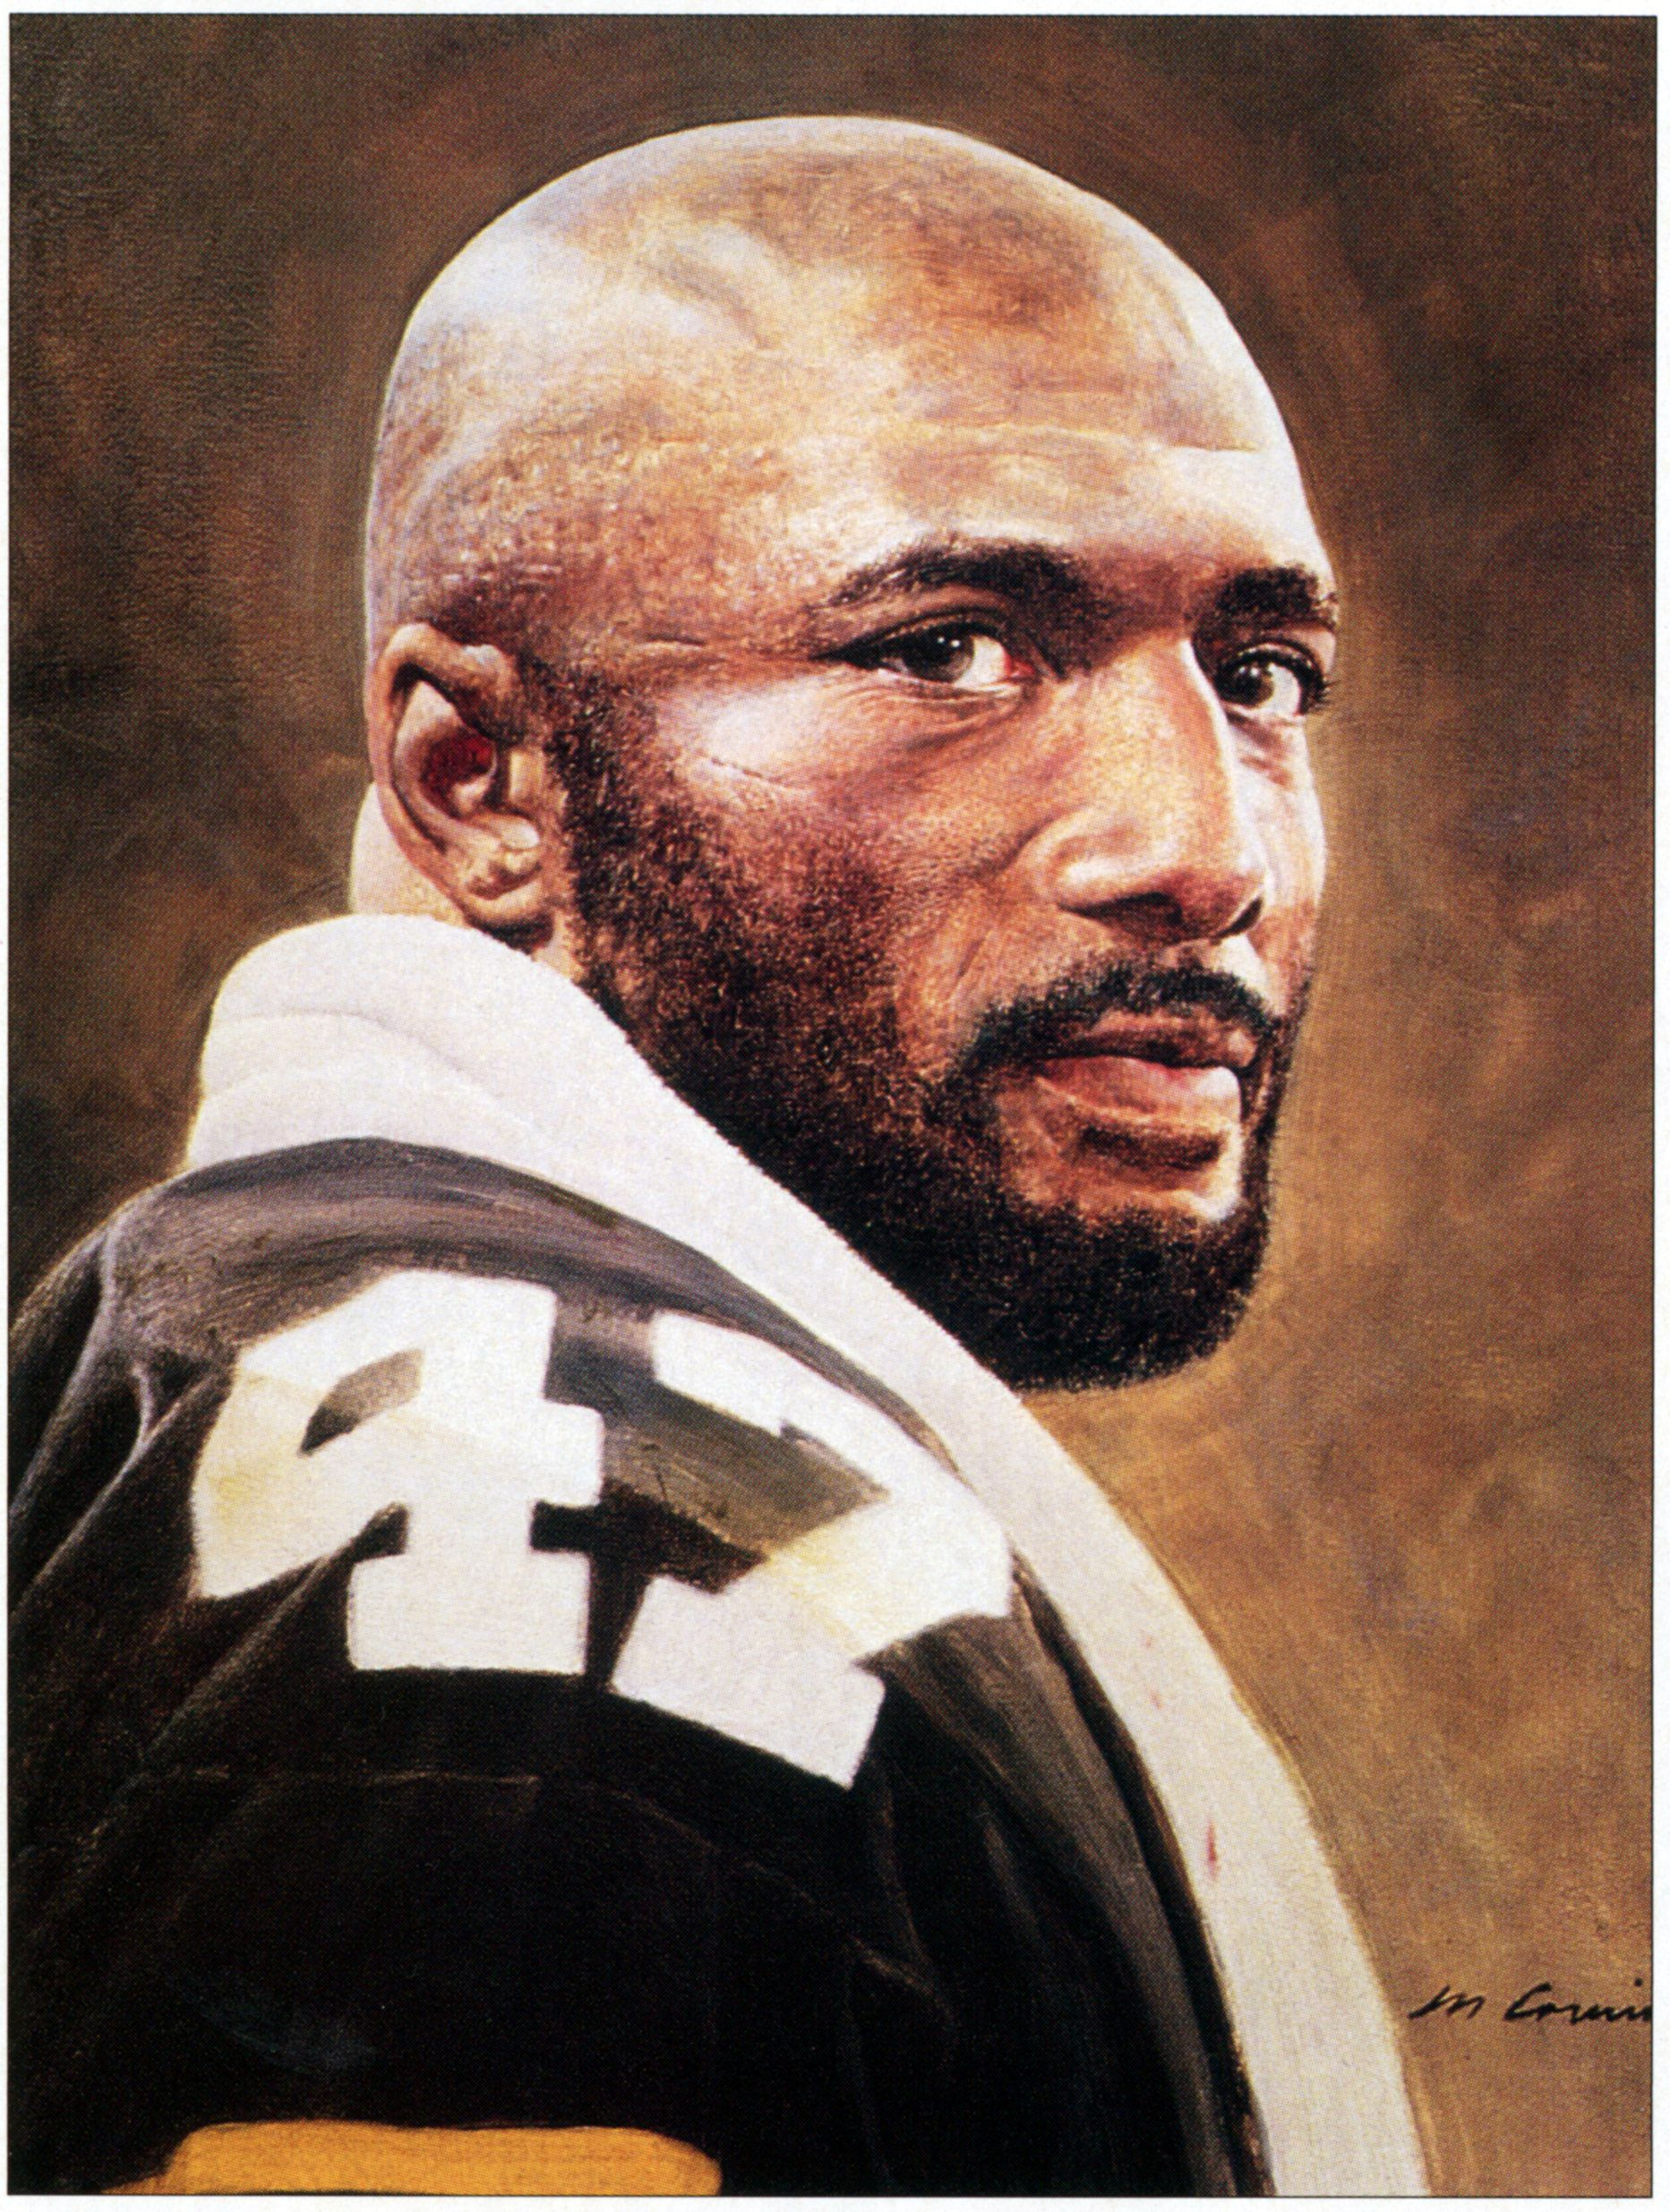 Portrait of Pittsburgh Steelers cornerback Mel Blount by artist Merv Corning.